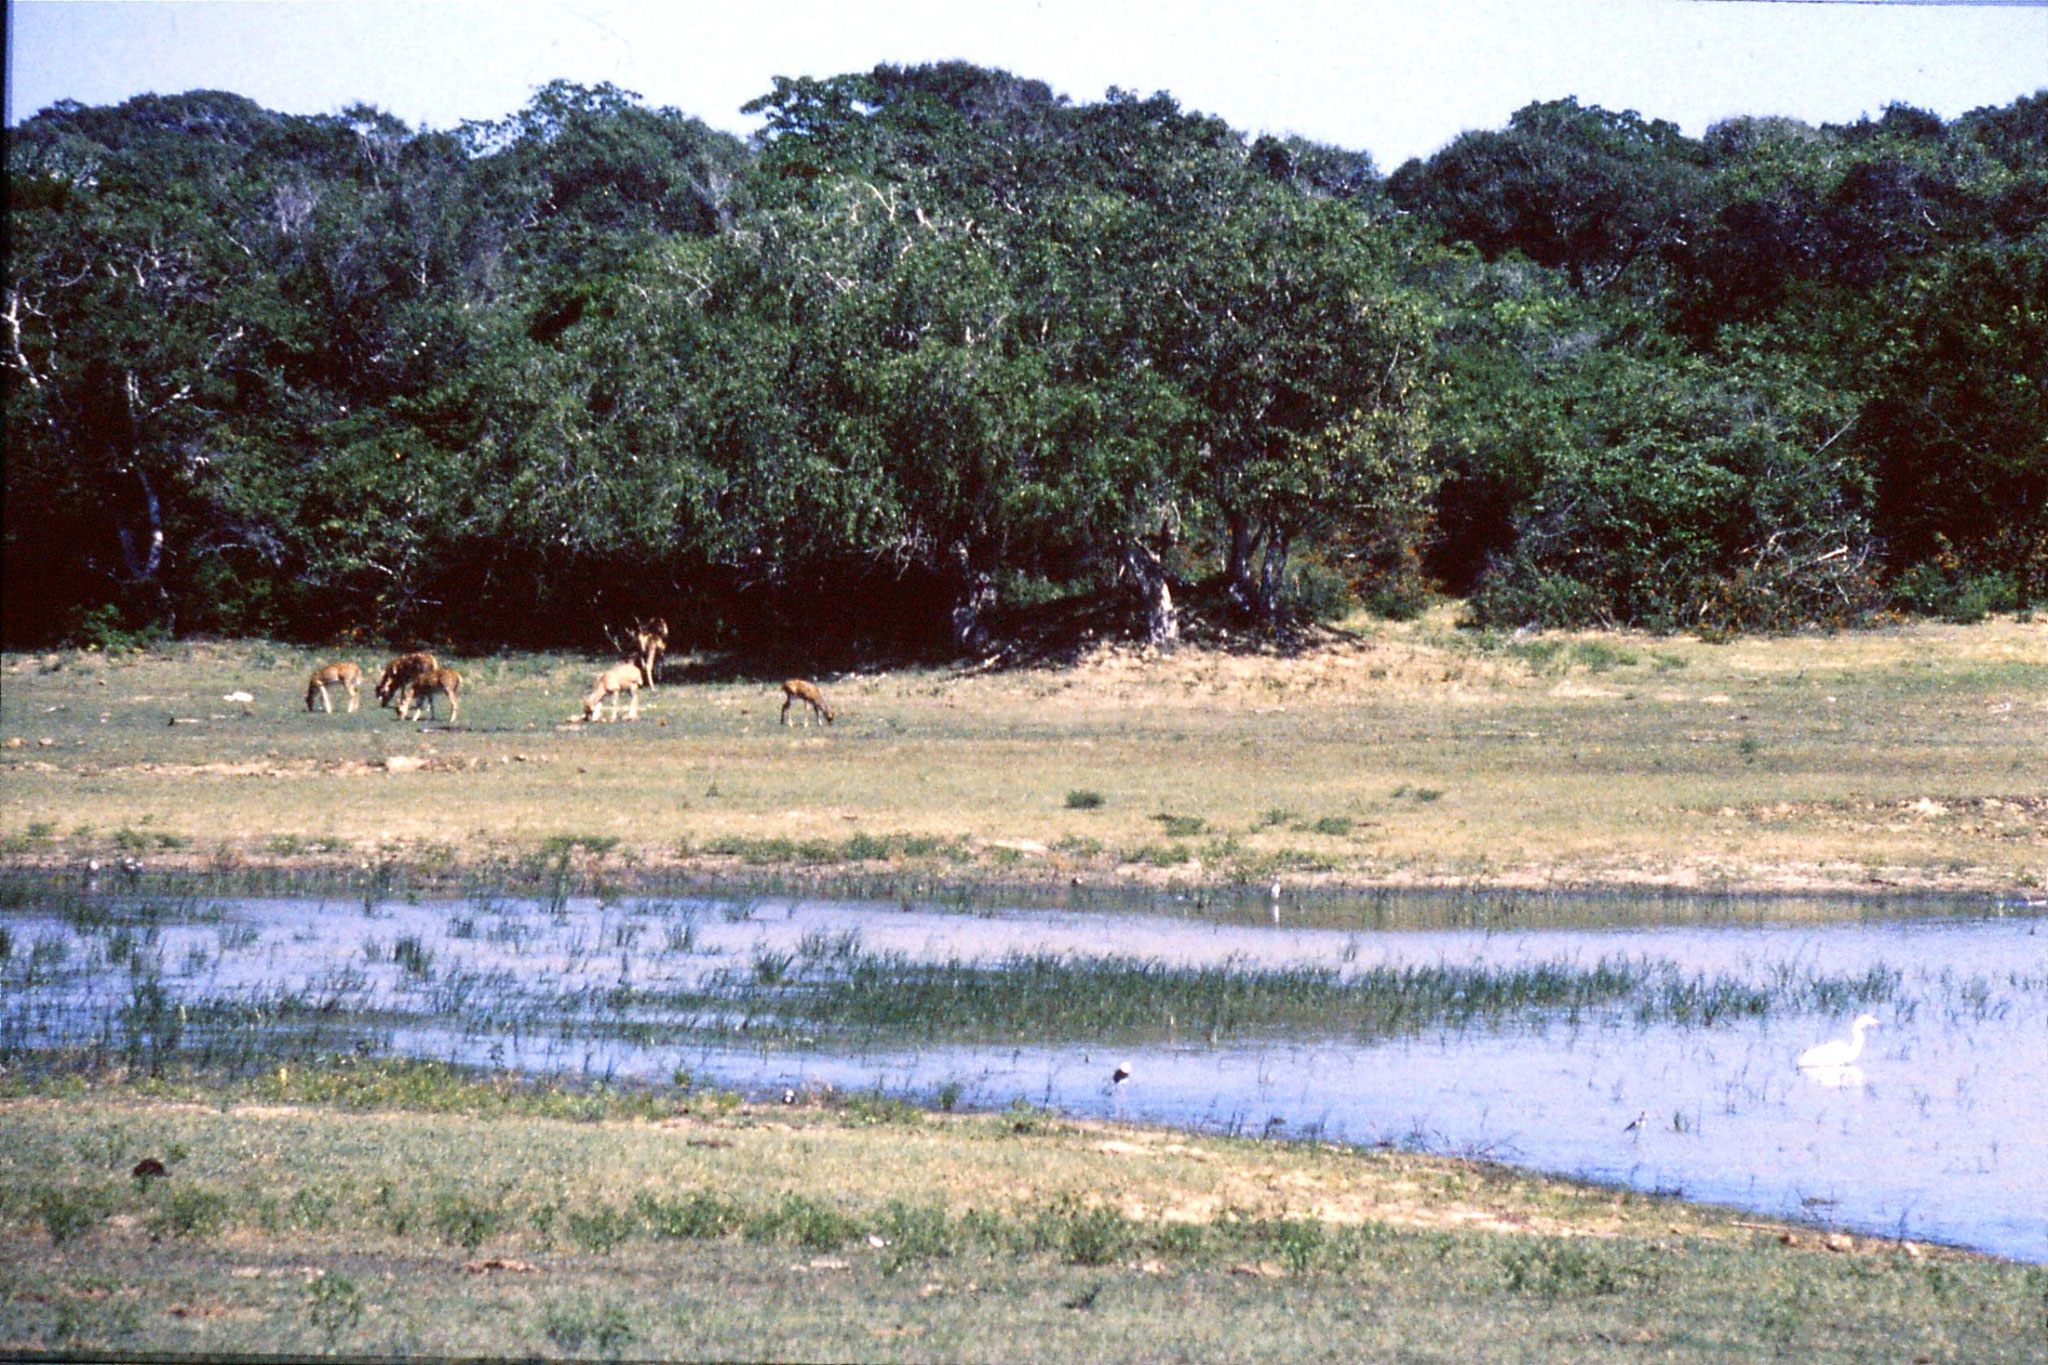 27/1/1989: 23: Yala National Park